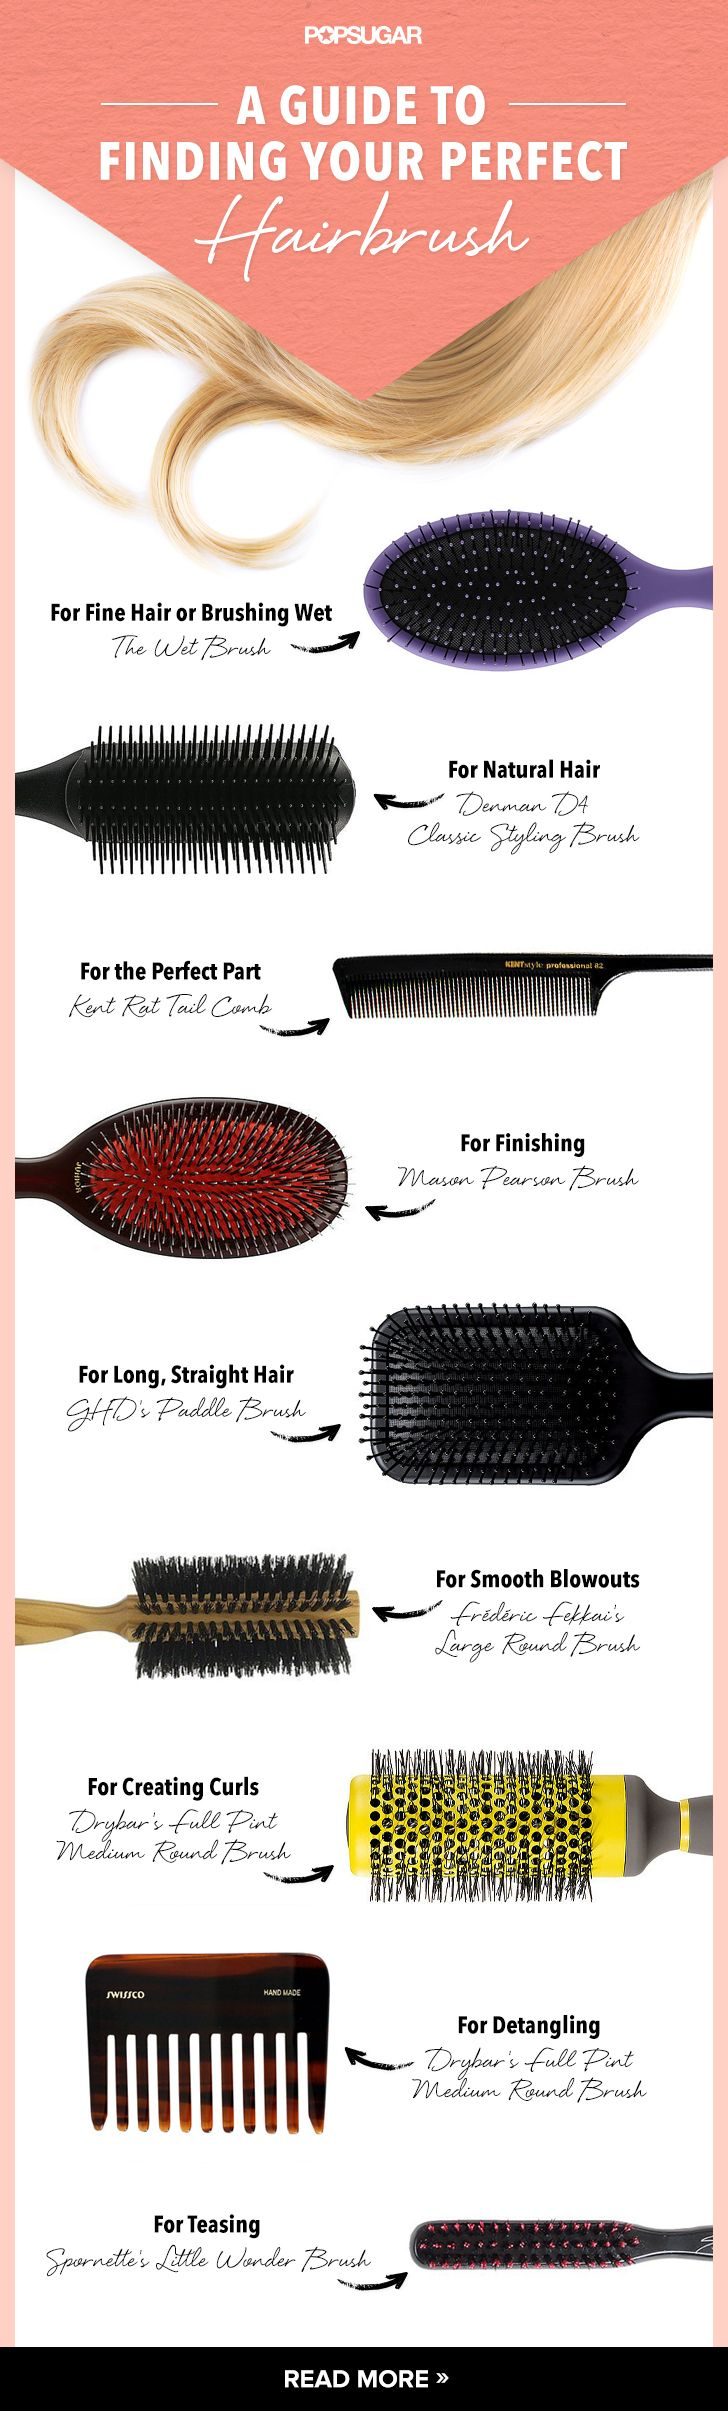 Everything You Need To Know To Find Your Perfect Hairbrush Hair Brush Beauty Hair Beauty